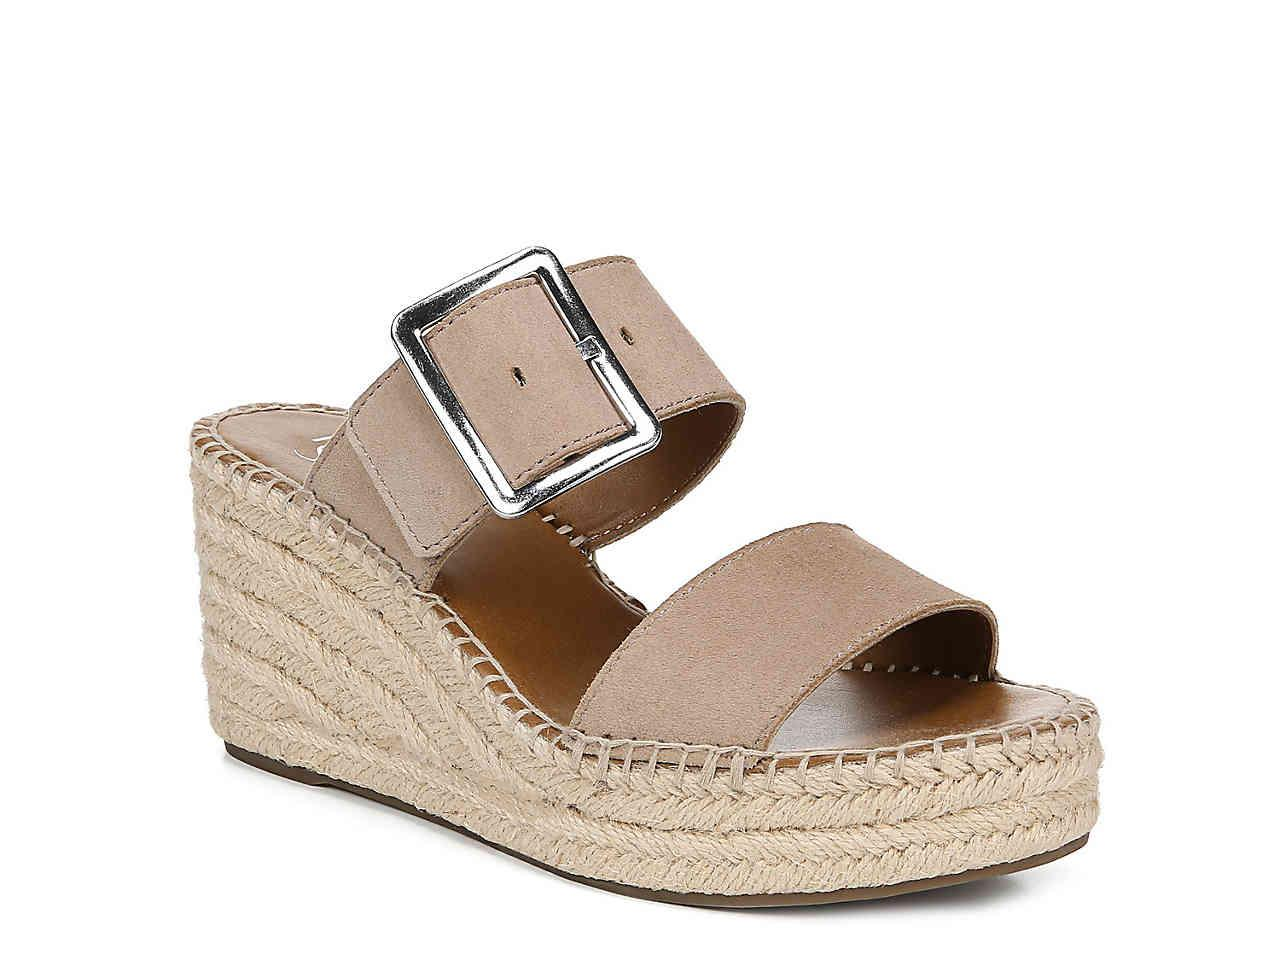 95d121479aed Lyst - Franco Sarto Coastal Espadrille Wedge Sandal in Natural